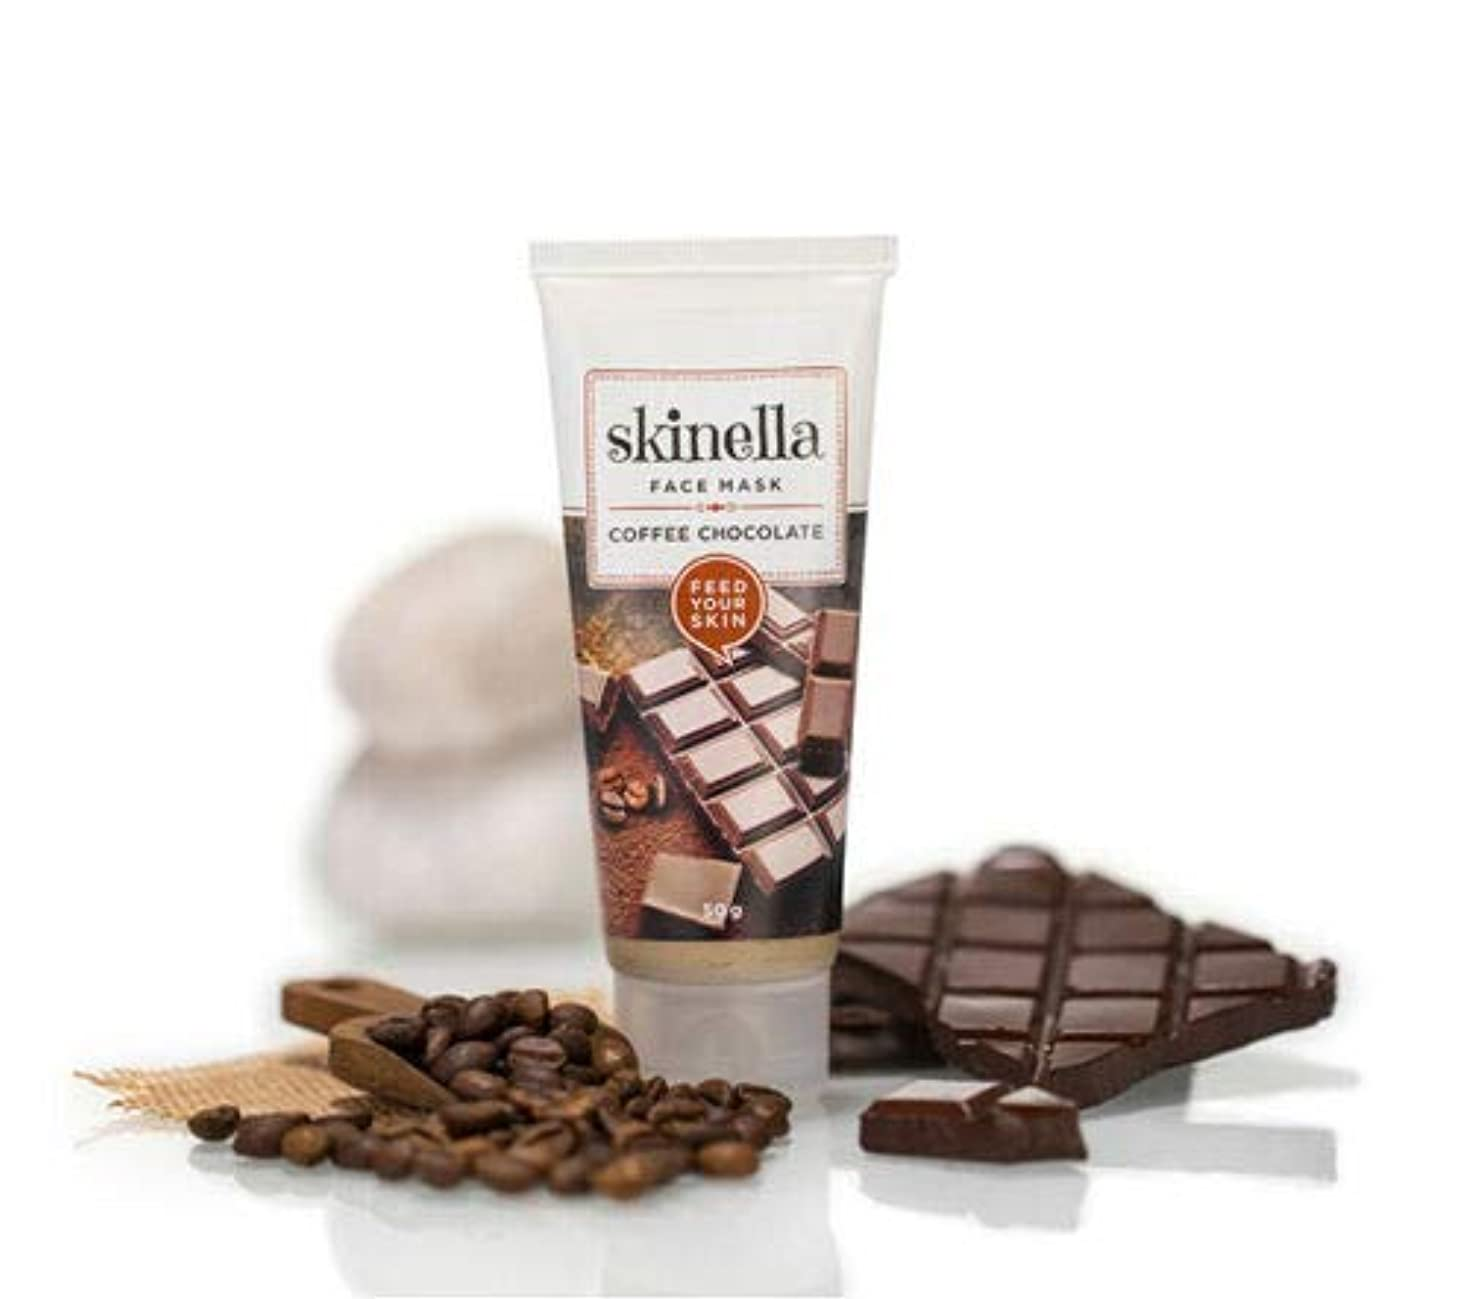 恋人居間主人Skinella Coffee Chocolate Face Mask 50g for a hydrated and rejuvenated look Skinellaコーヒーチョコレートフェイスマスク50g